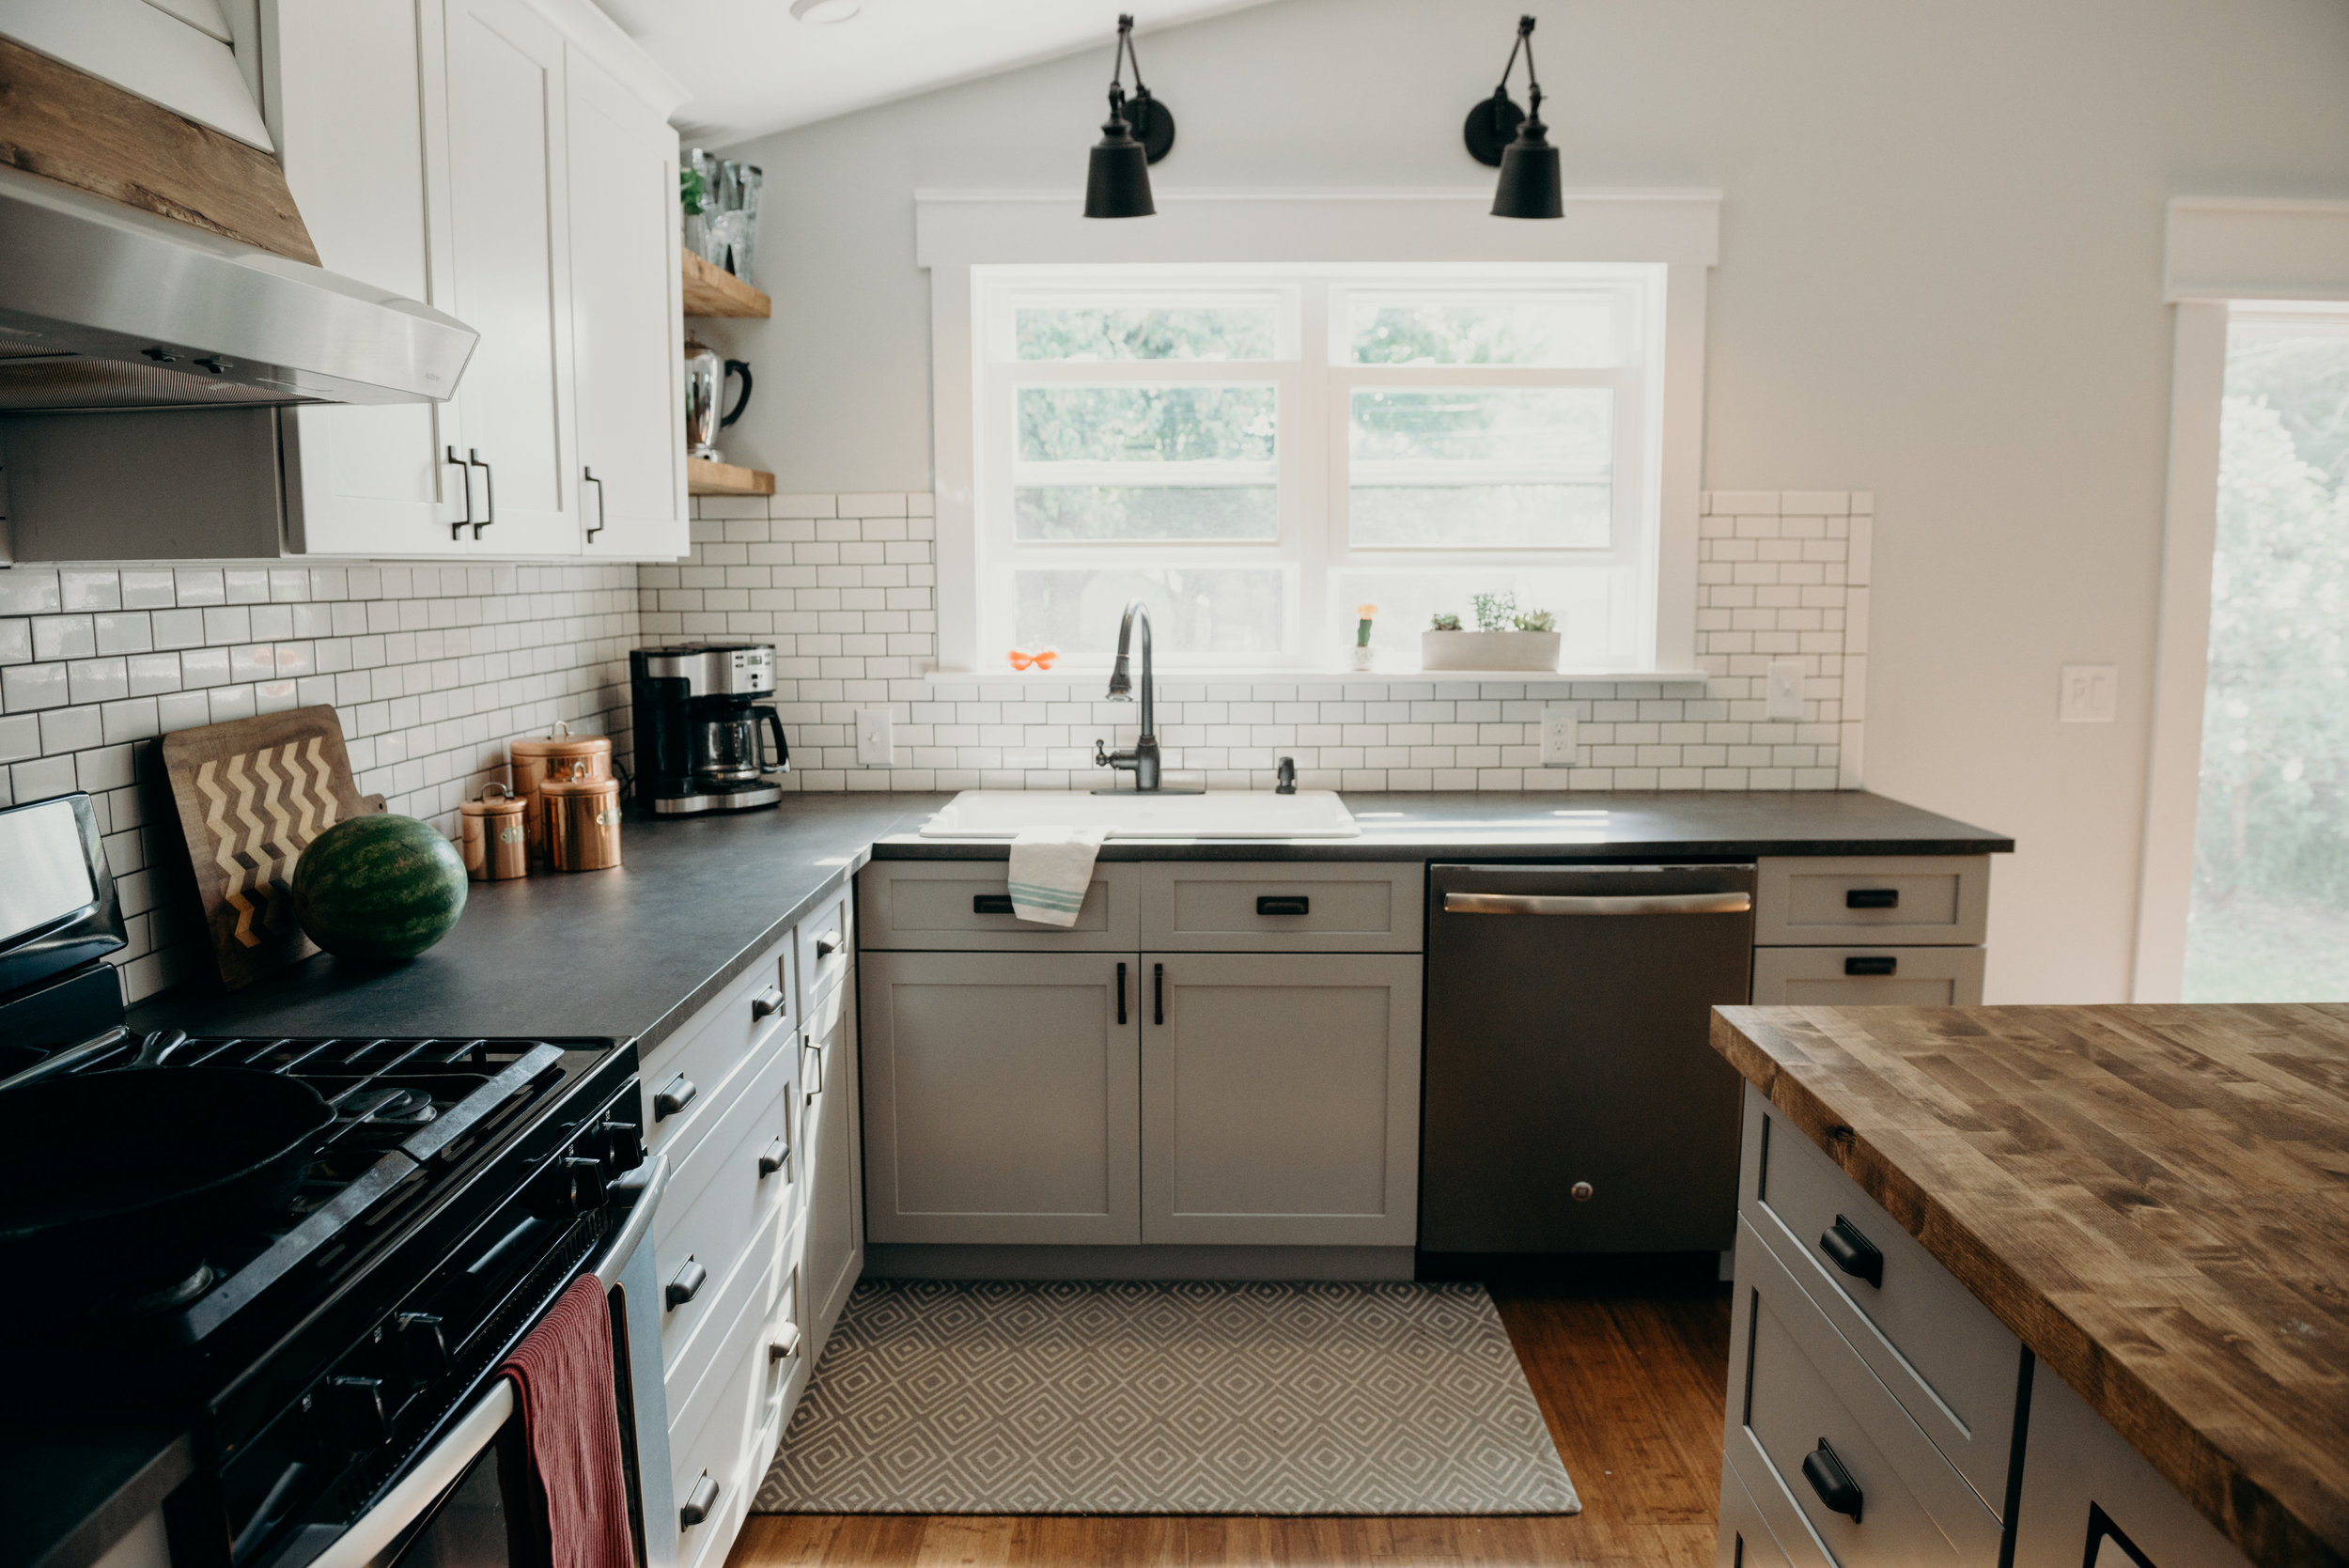 Sink Cabinets - ACME Cabinet Co.